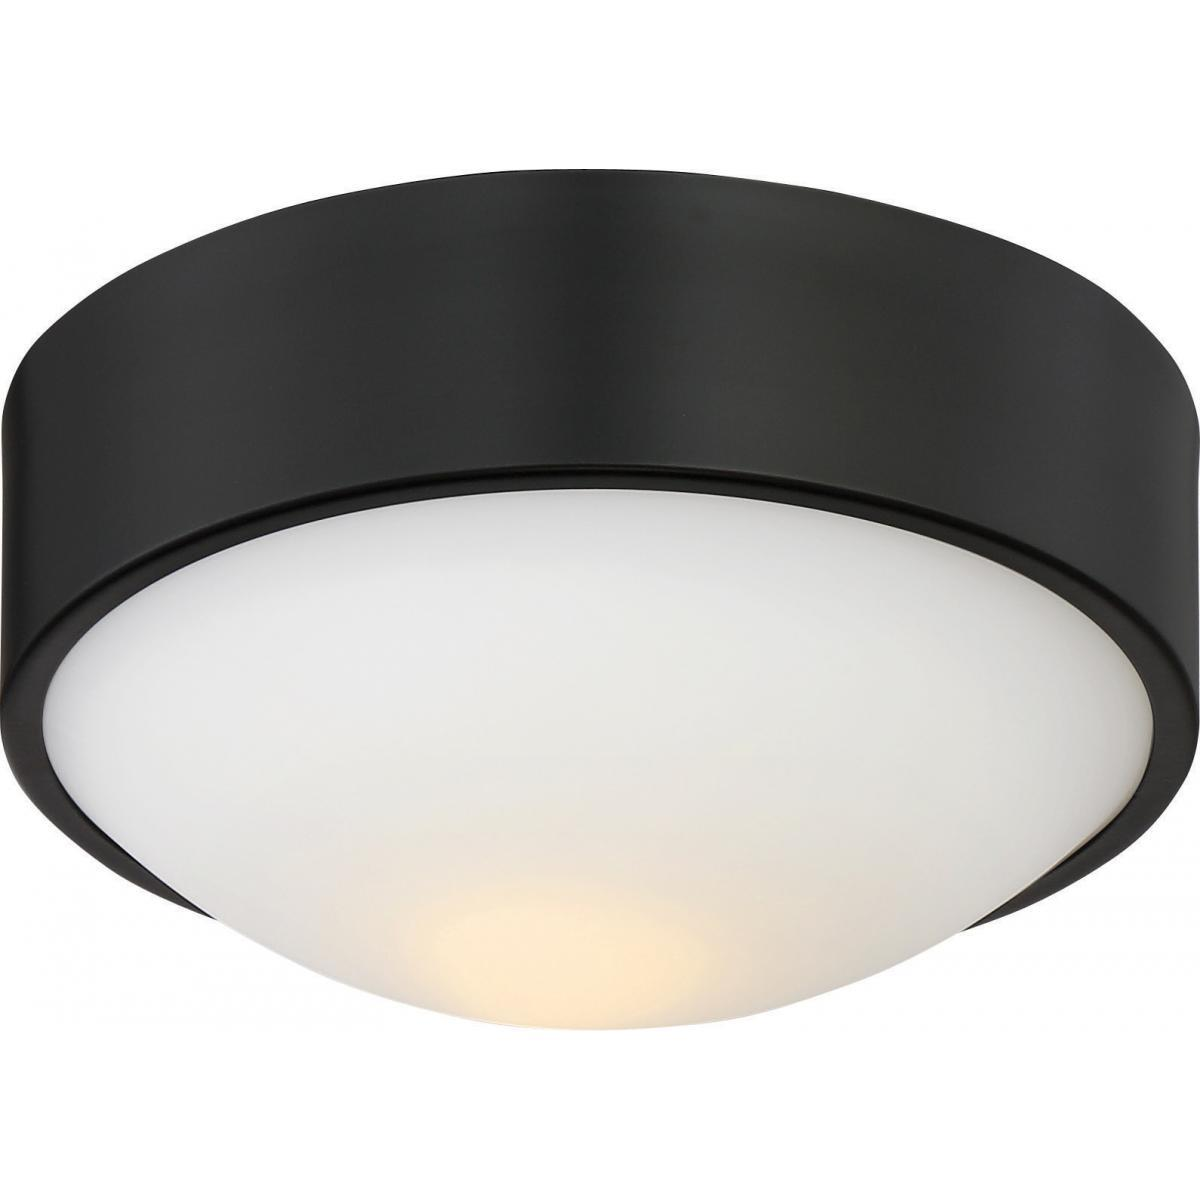 "Perk 9"" LED Flush with White Glass Ceiling Nuvo Lighting"